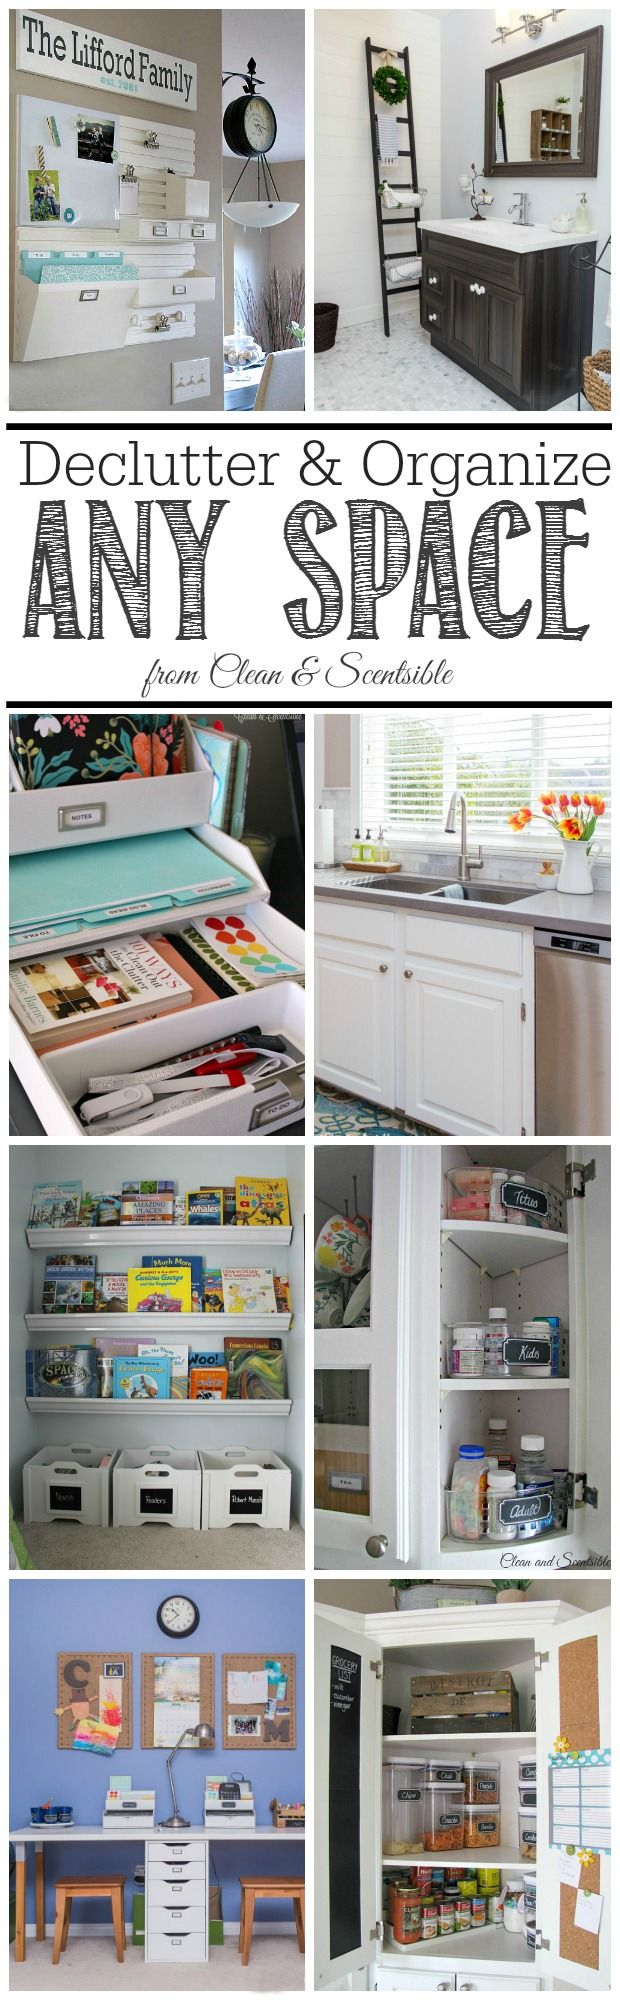 9181 best images about Organizing Brilliance! on Pinterest